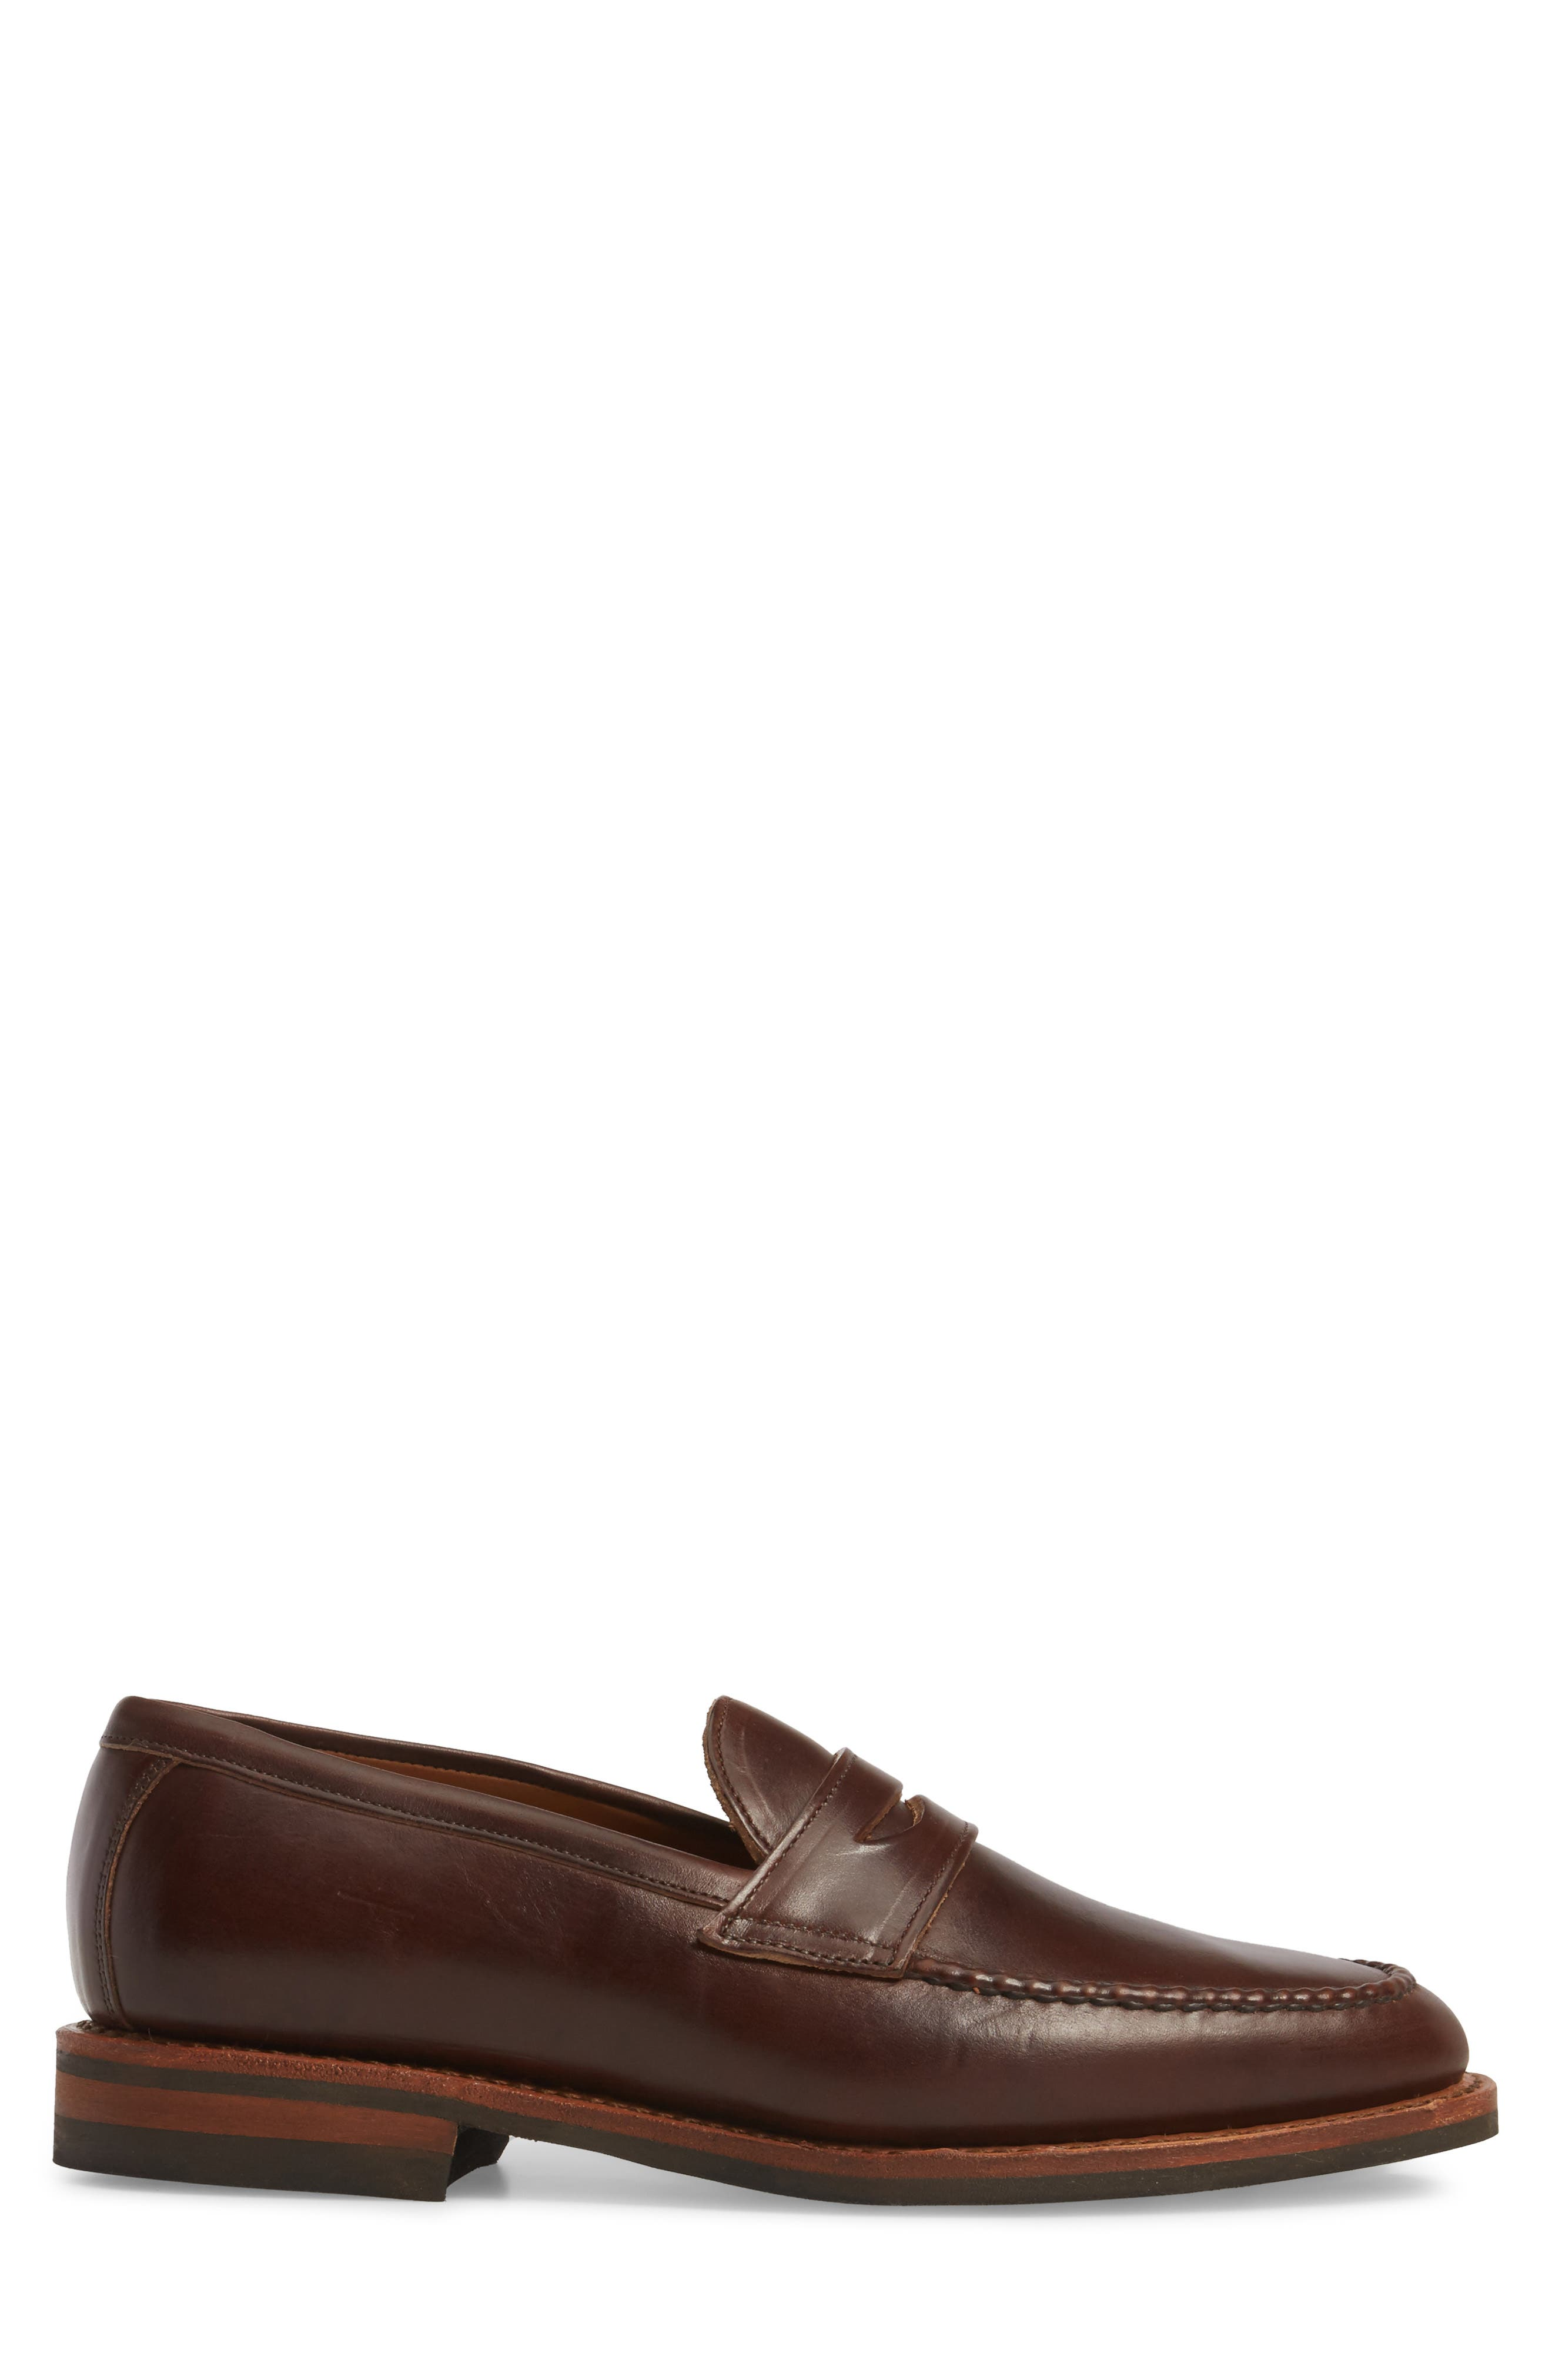 Addison Penny Loafer,                             Alternate thumbnail 3, color,                             BROWN LEATHER